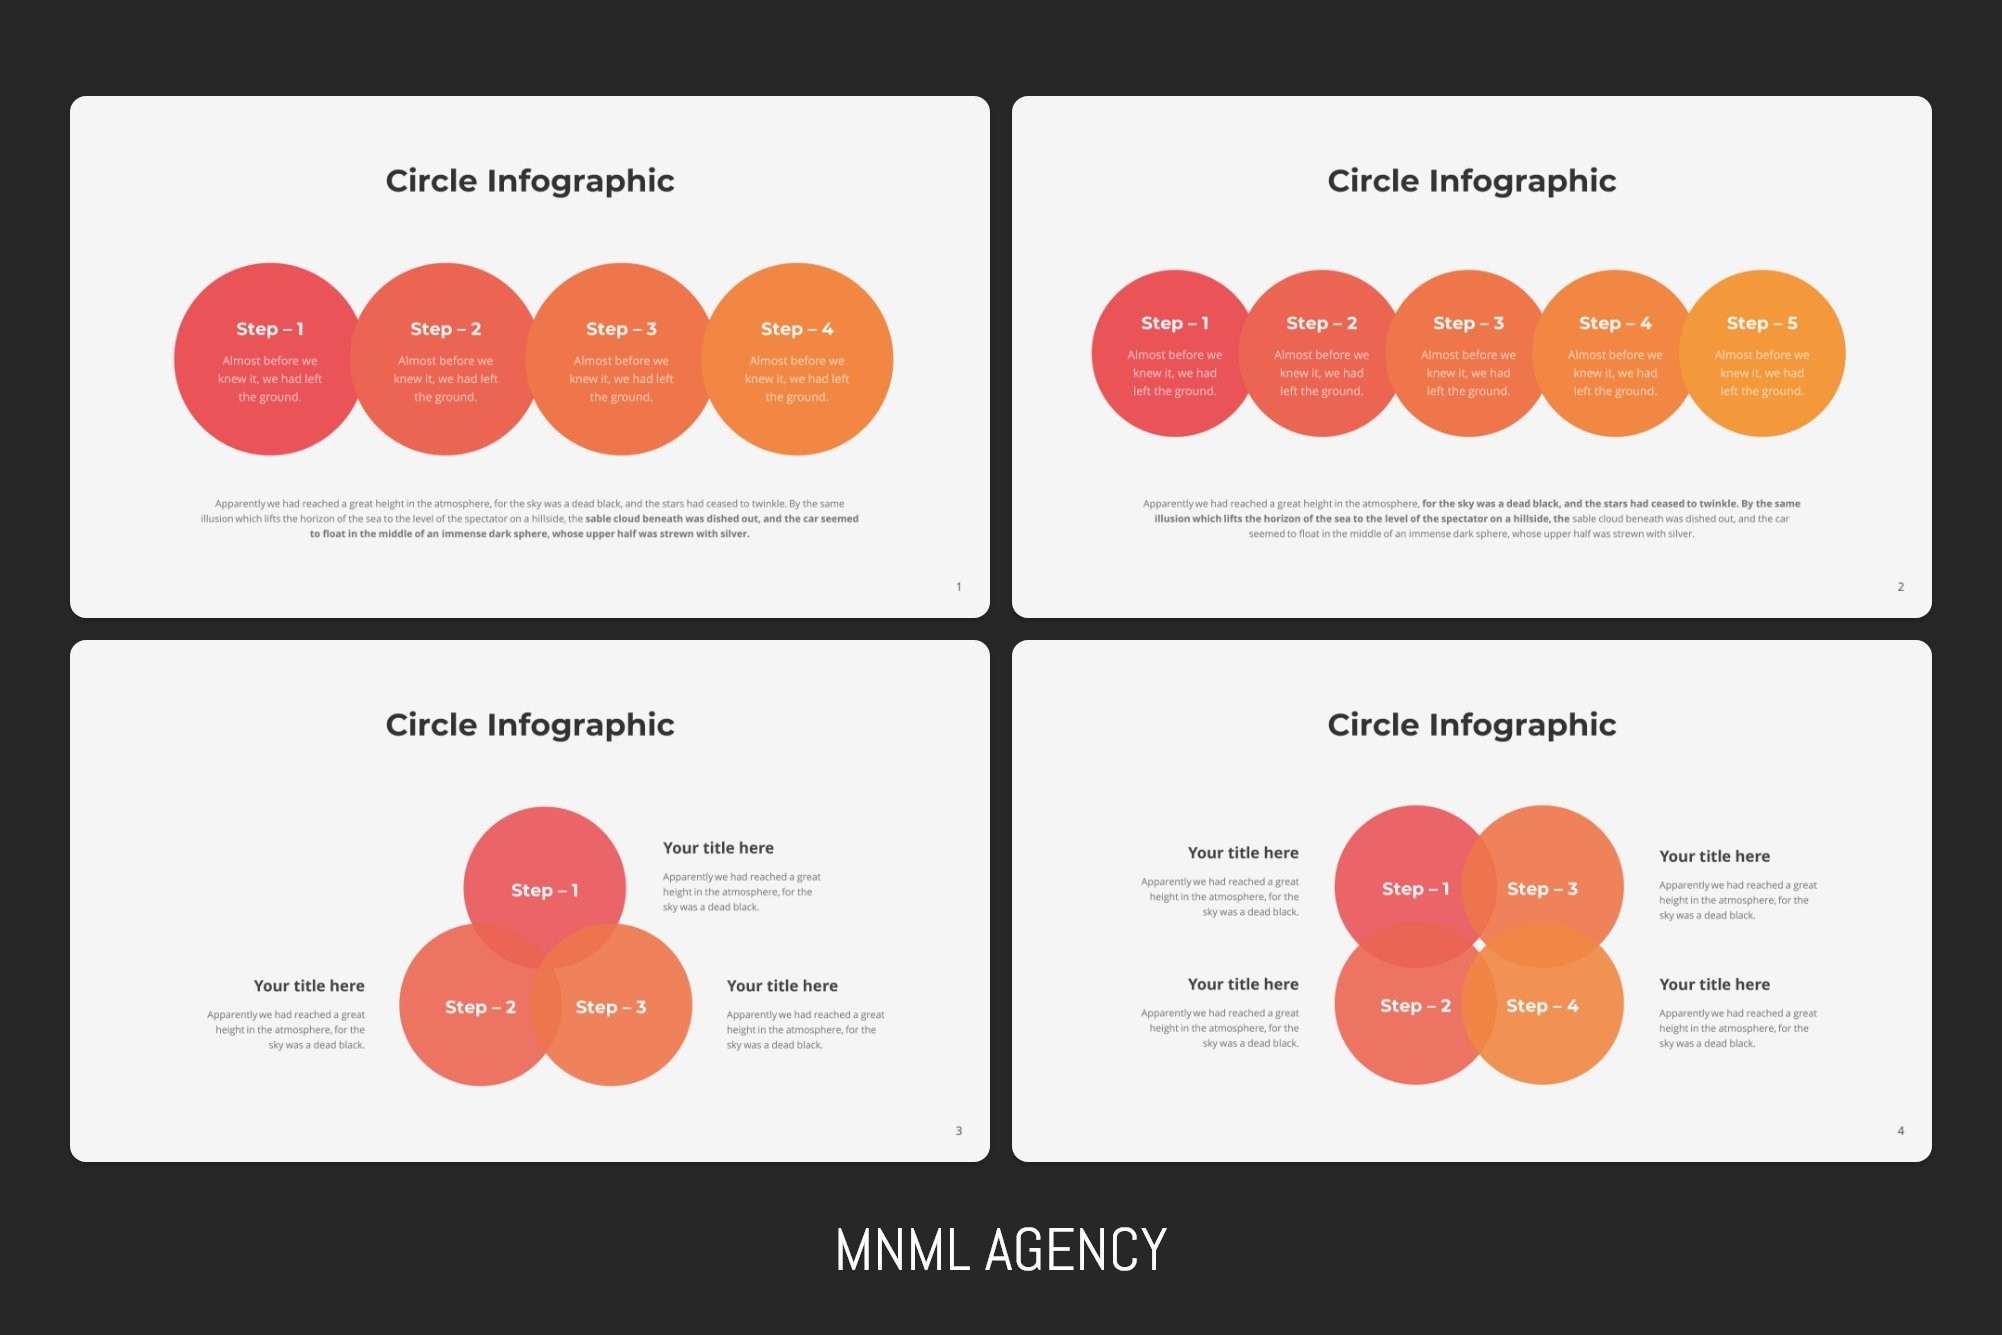 Infographic details in the different colors.